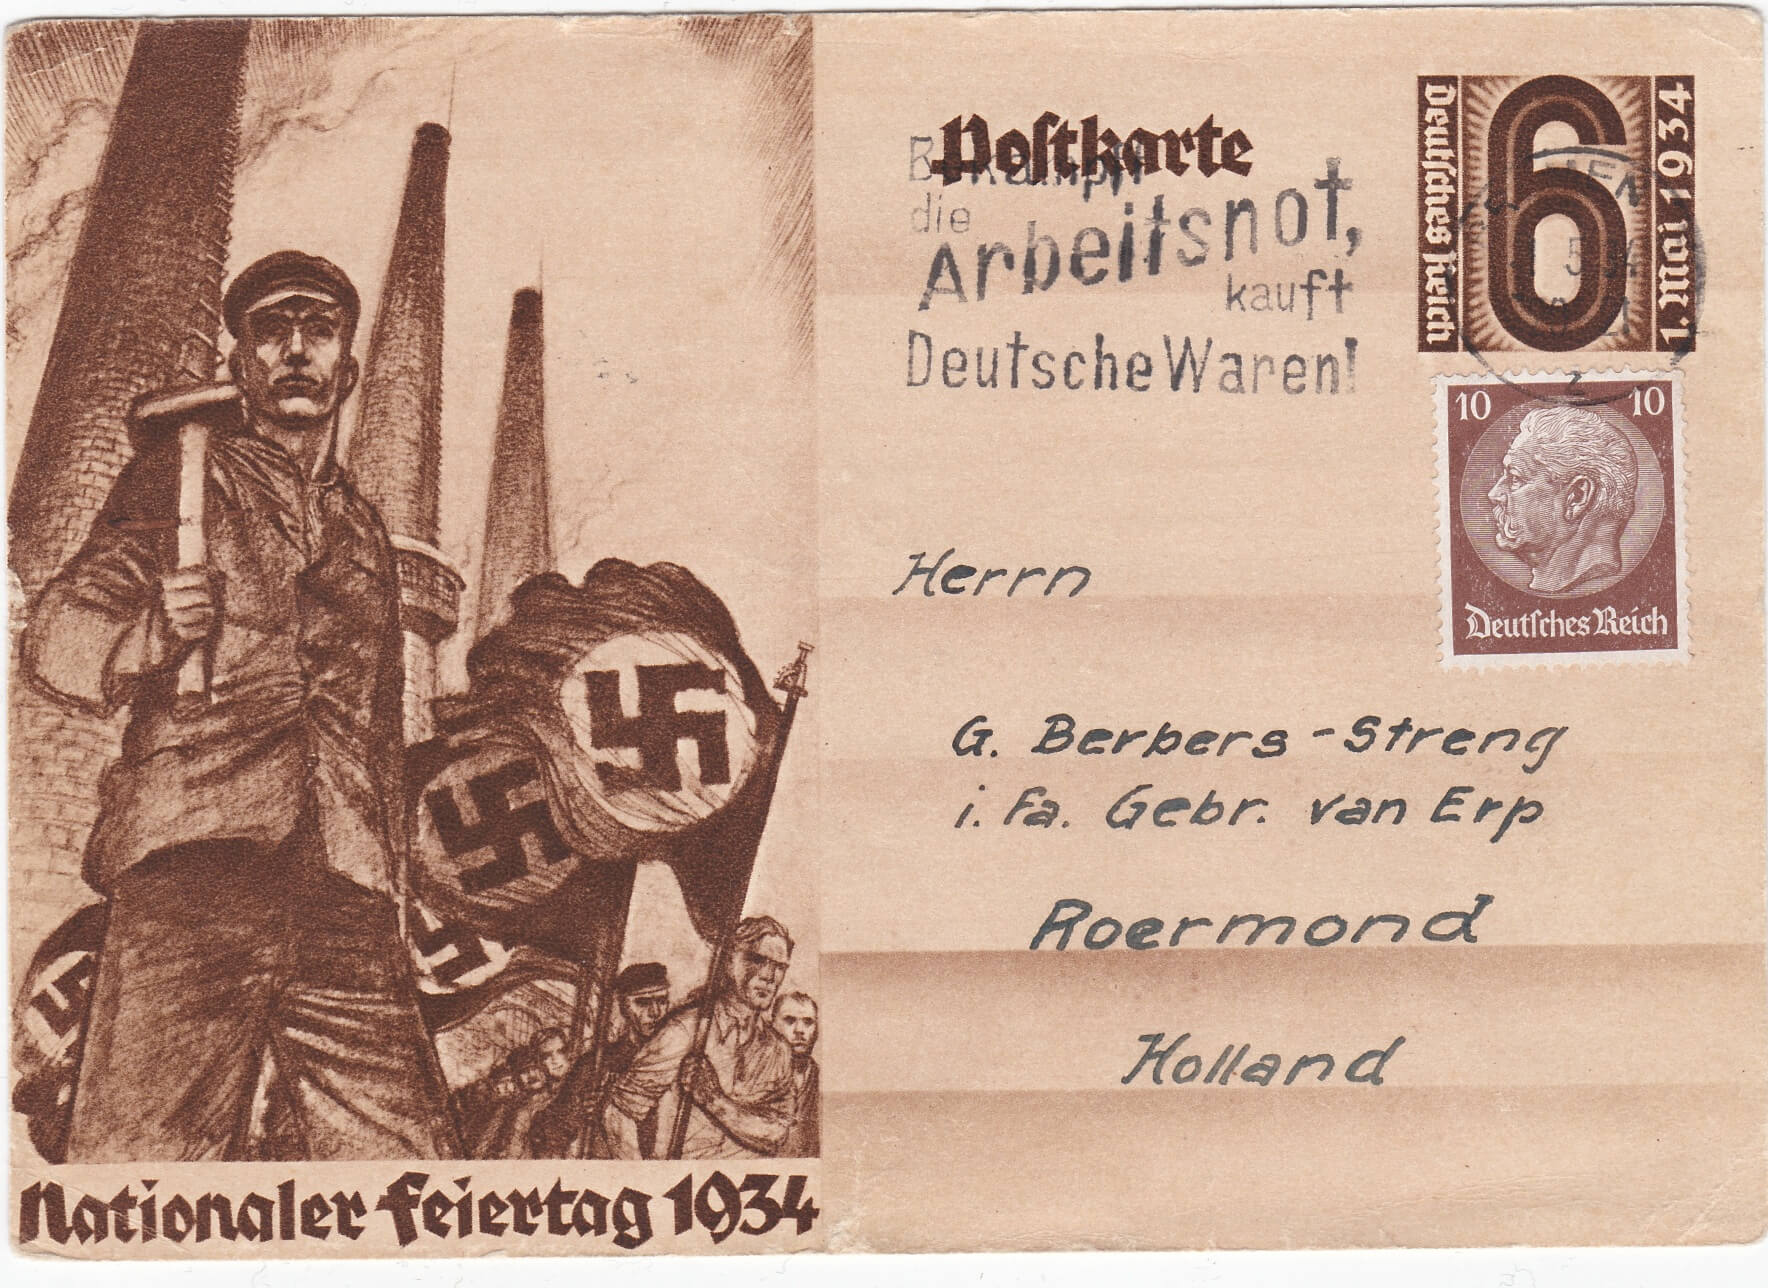 Nationaler Feiertag 1934 postkaart